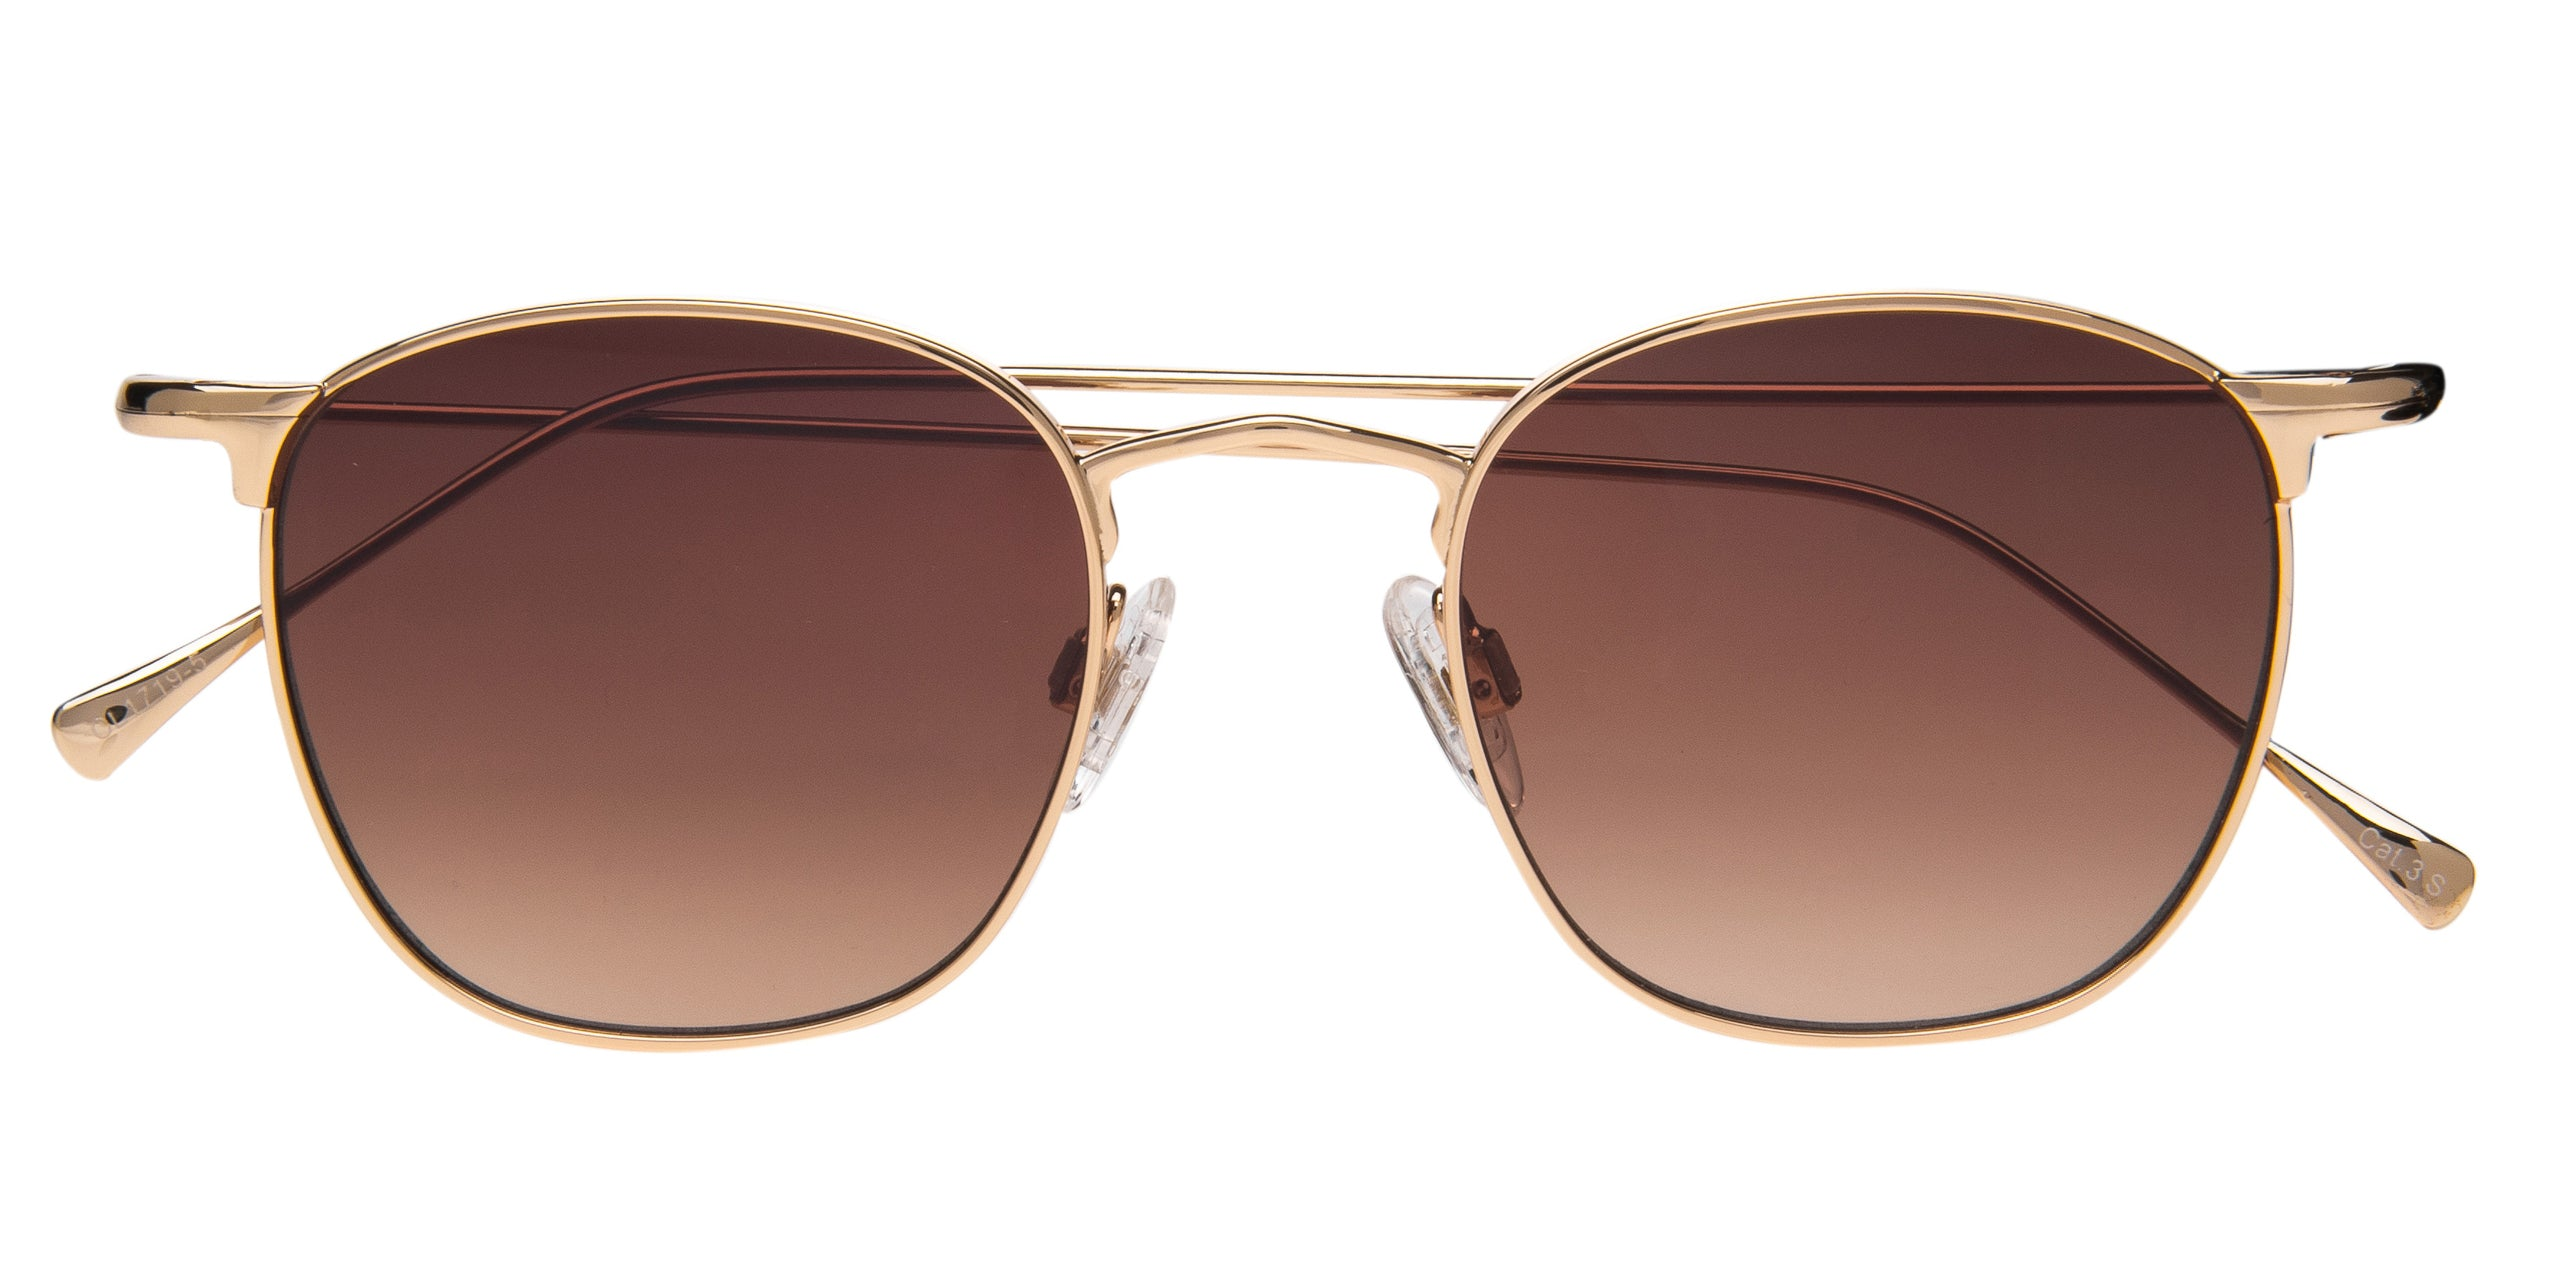 FRAME Shiny Light Gold LENS Gradient Brown